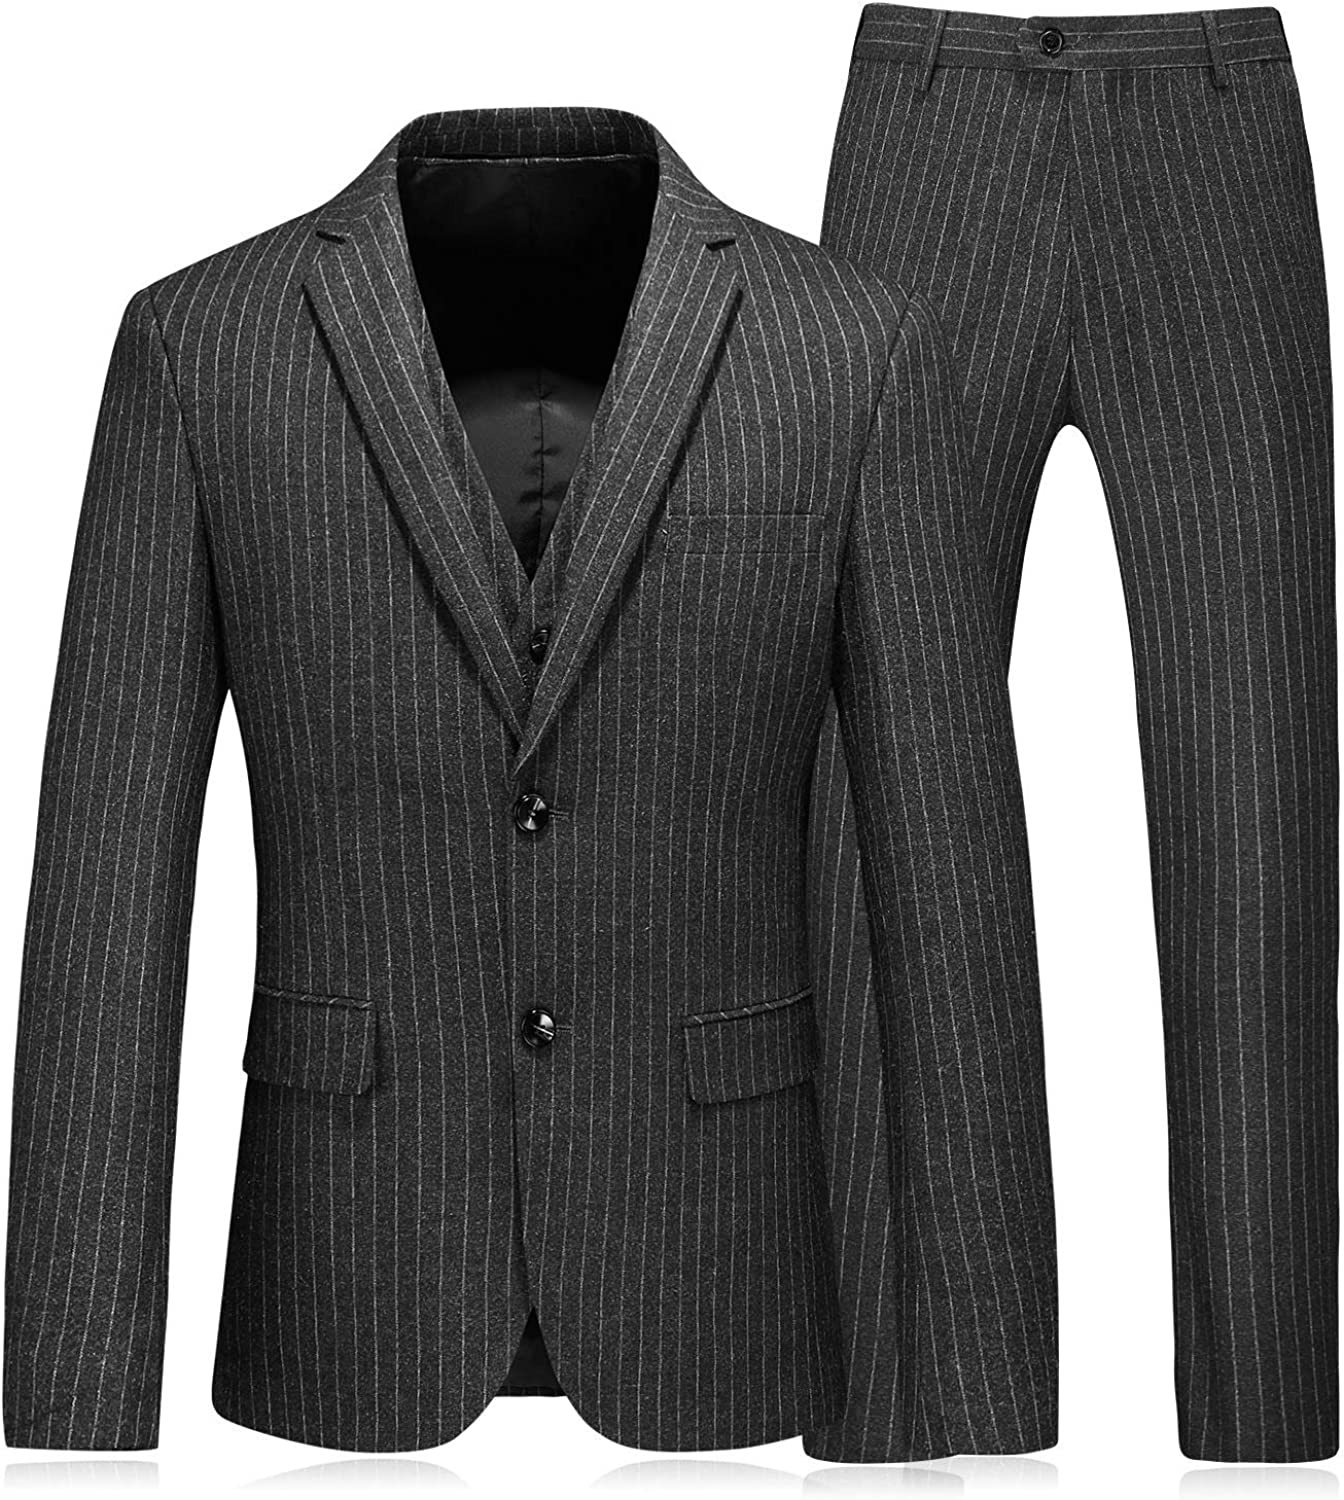 PG Direct stock discount Men's Choice One Button Pinstripe Pieces Busines Suit Three Wedding